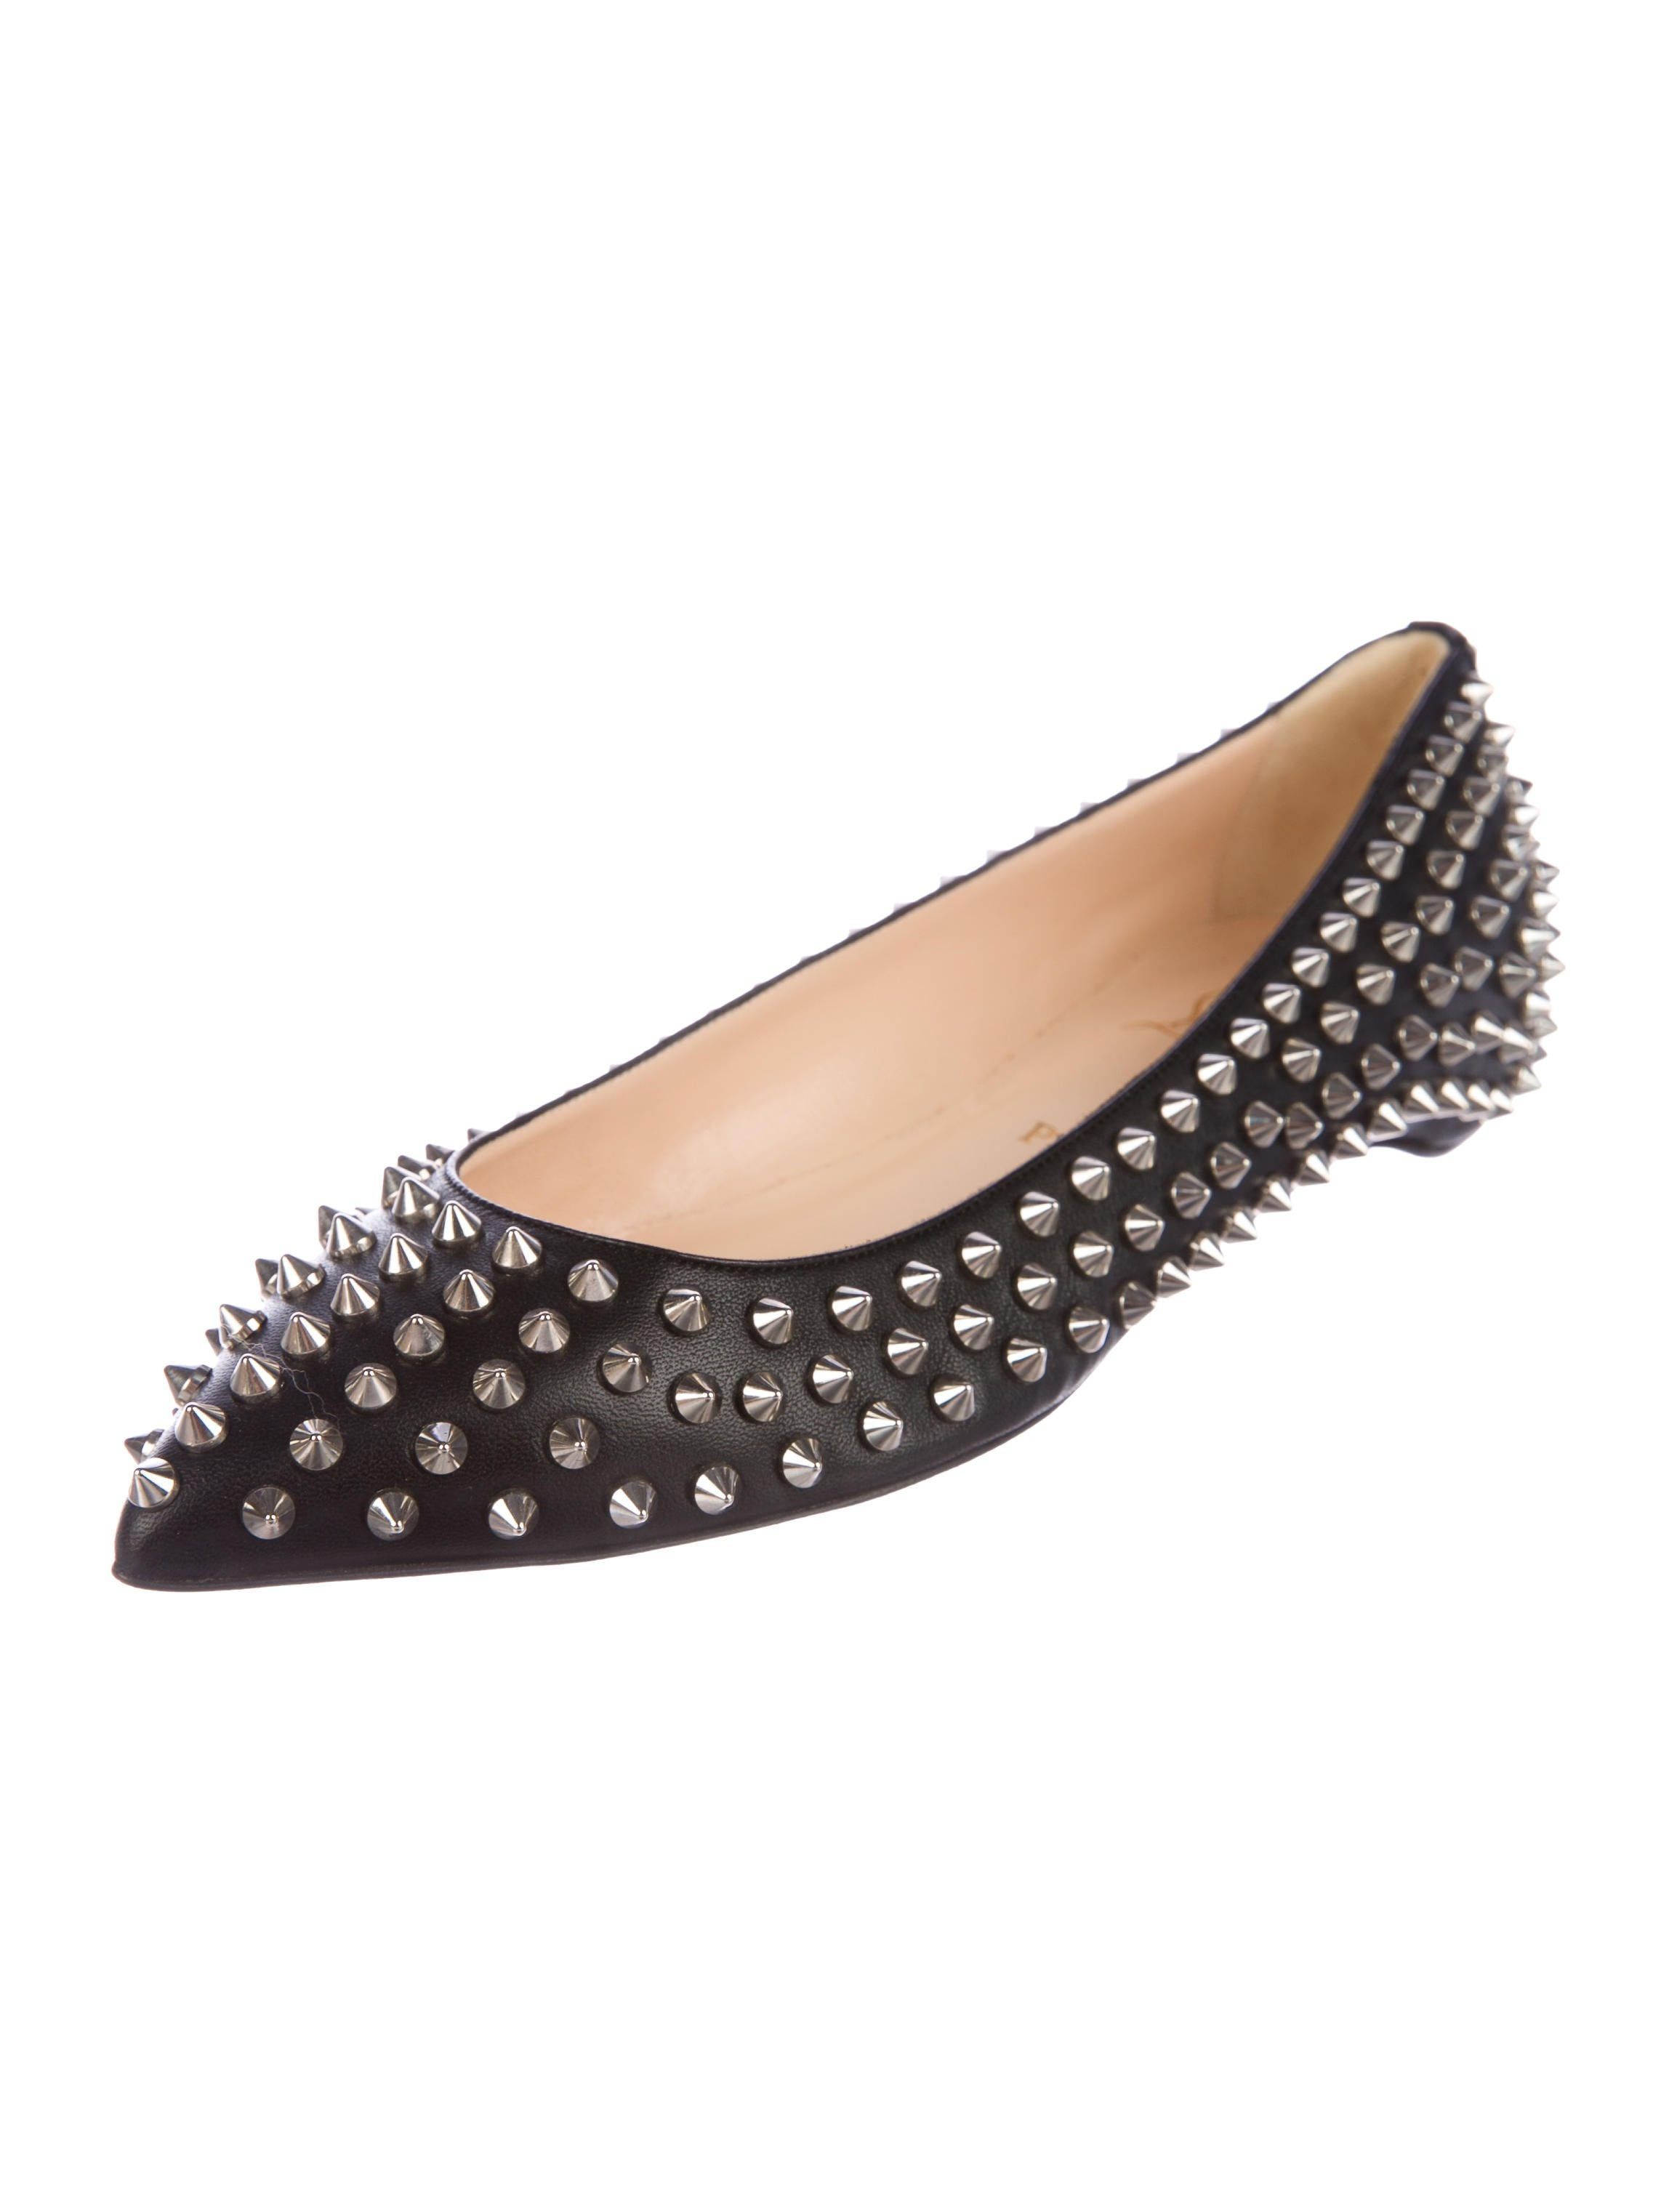 Christian Louboutin Pigalle Spikes Flats w/ Tags buy cheap 2014 newest reliable cheap price from china exclusive sale online WYoAY